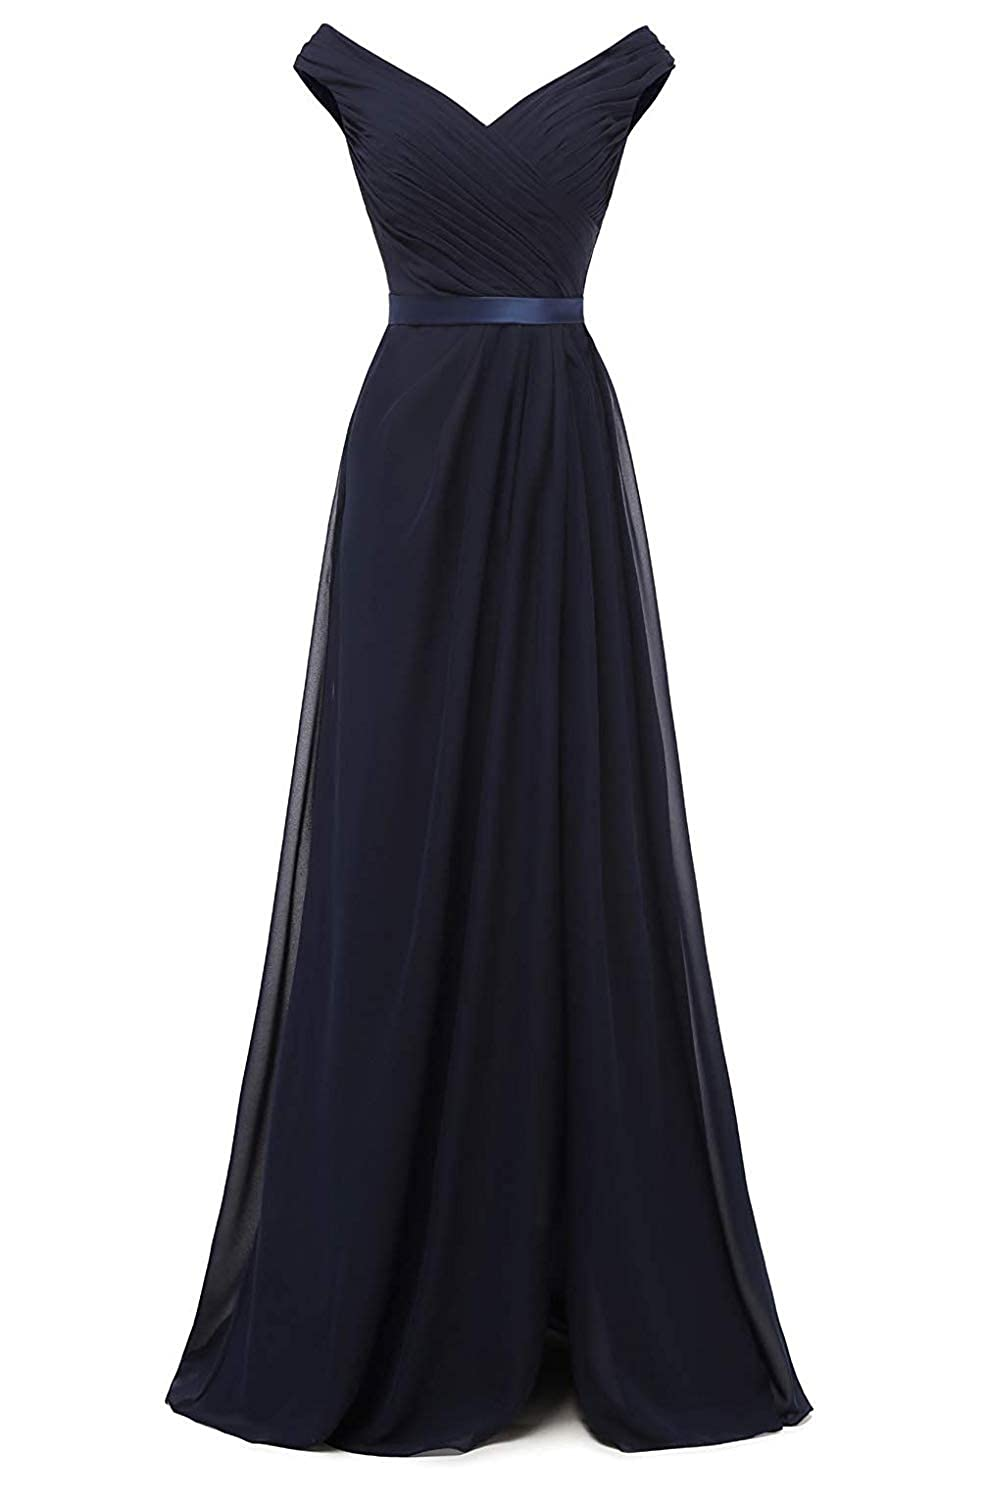 Navy bluee CongYunGe Women's Off Shoulder Bridesmaid Dress Long Pleated Prom Dress 2019